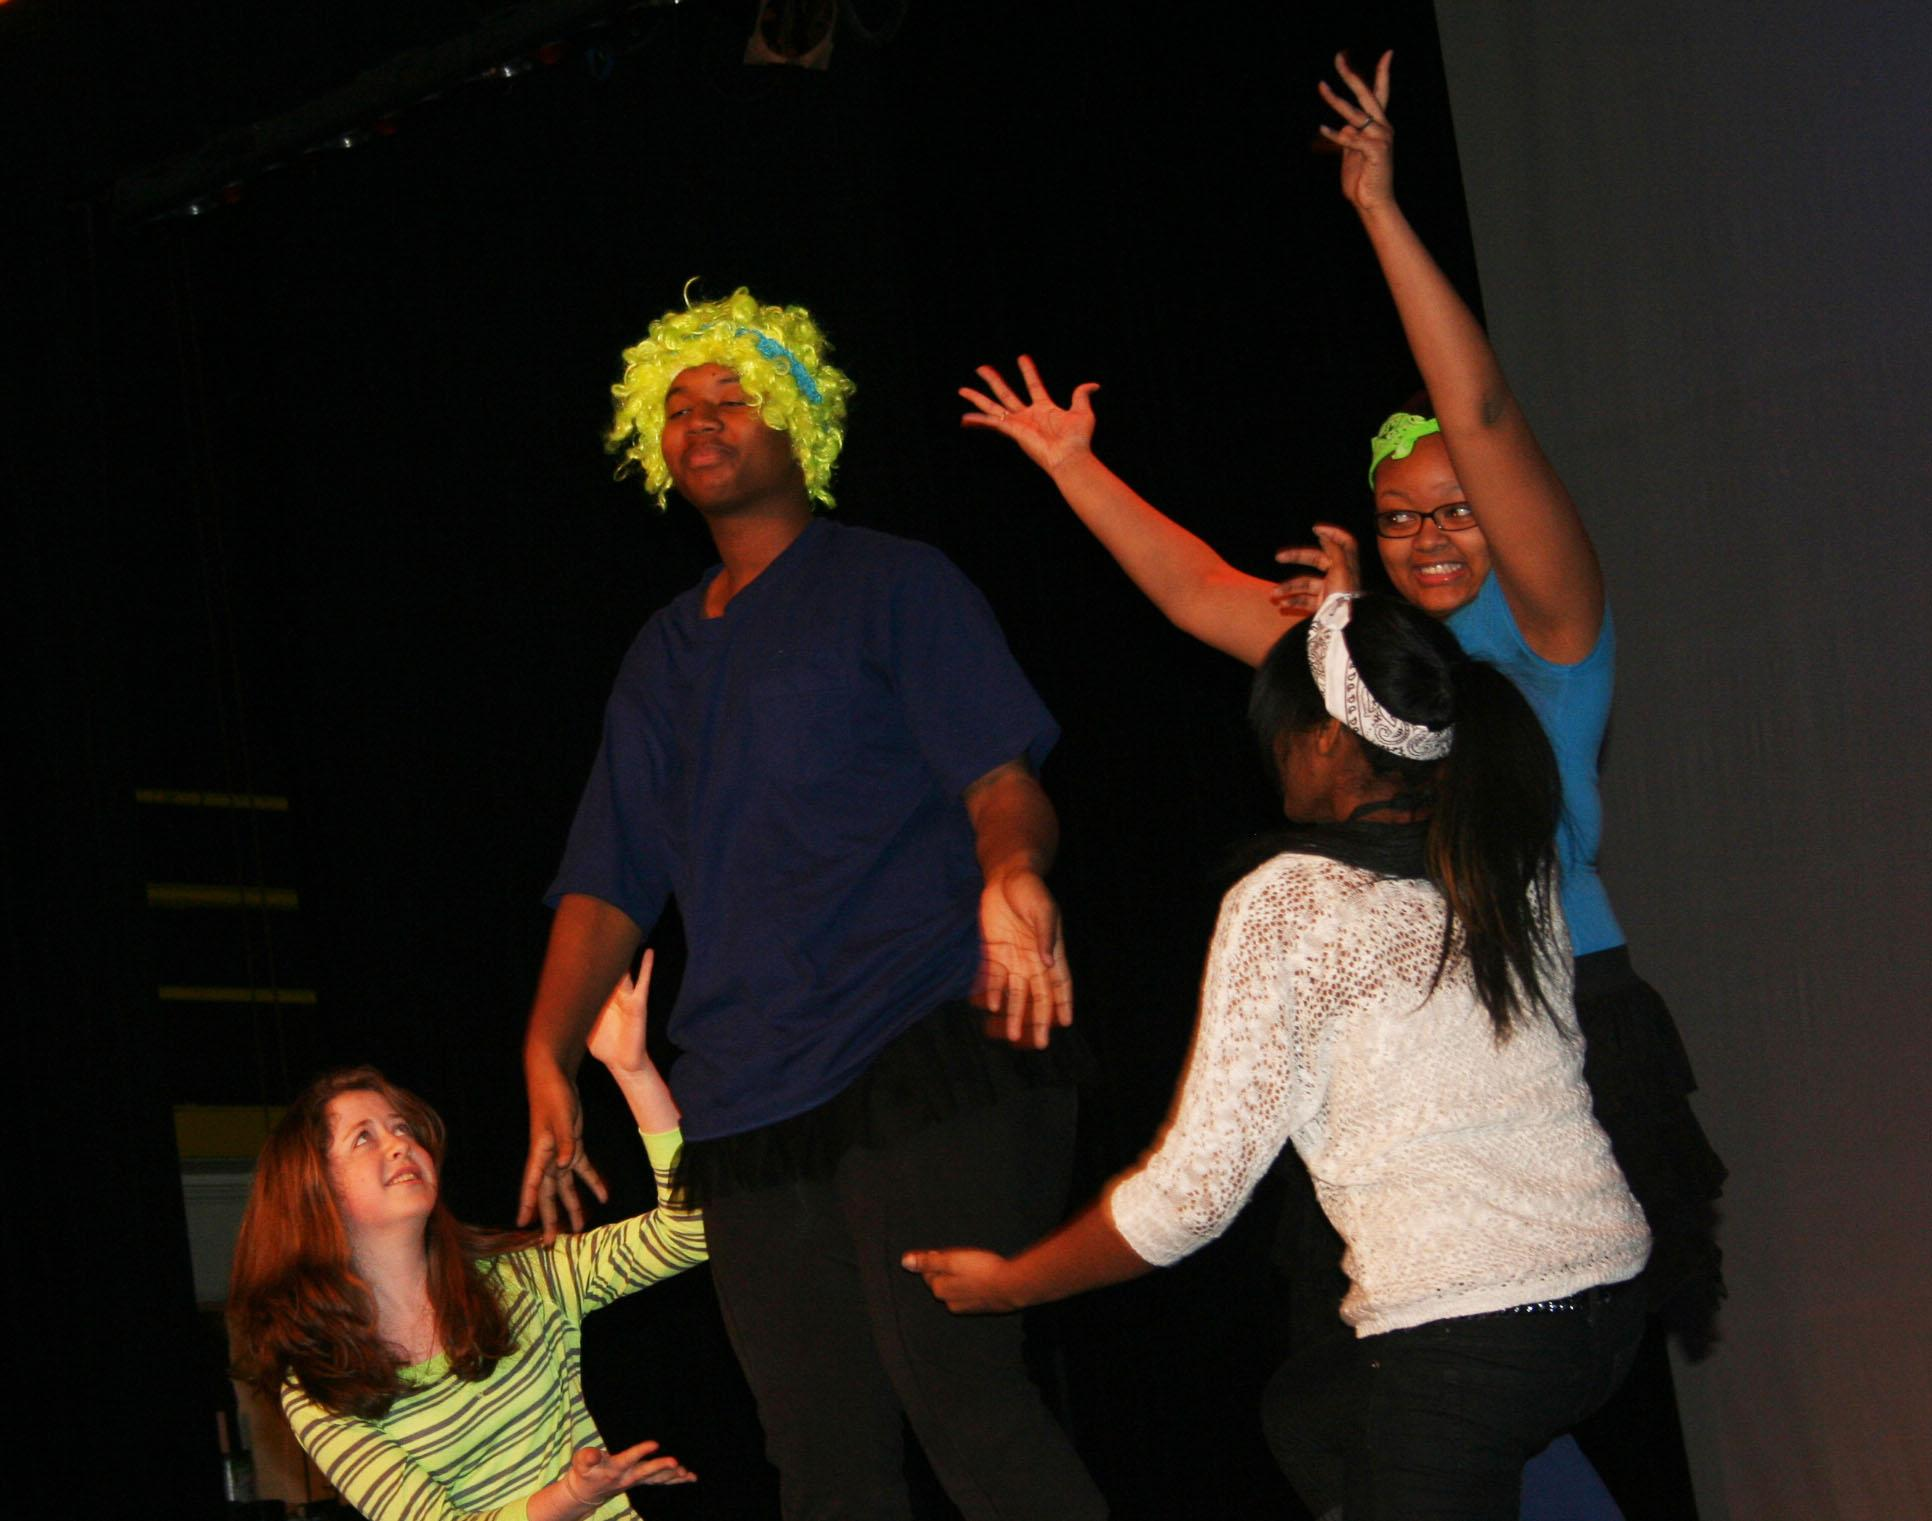 Photo by Marcus Boydsophomore Melanie Michelle, senior Tyrell Wilks-Williams, senior Raven Vanderbuilt, and sophomore Maryam Muhammad practicing there skit for there drama 2 performance. Tyrell is bring out his inner Nicki Minaj.